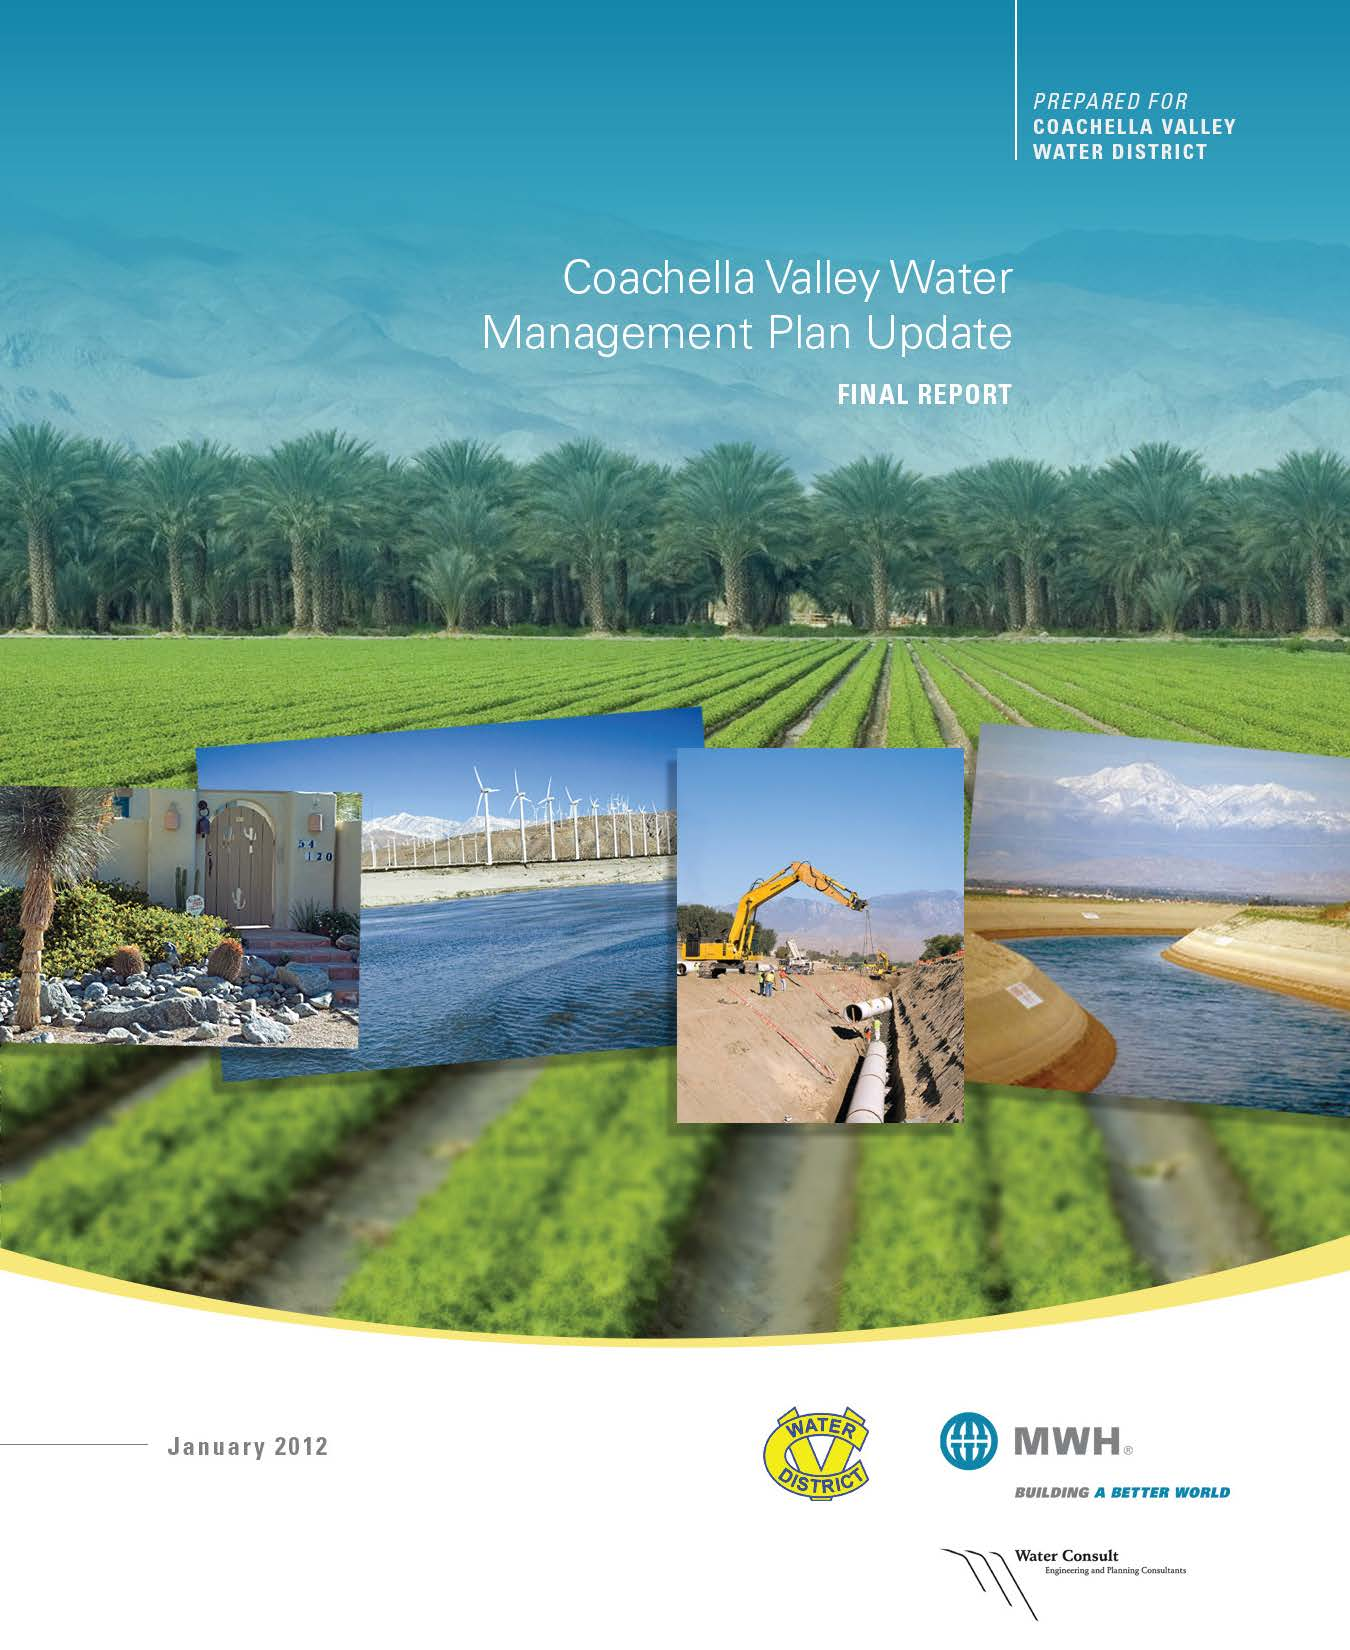 Coachella-Valley-Water-Management-Plan-Final-Report-COVER